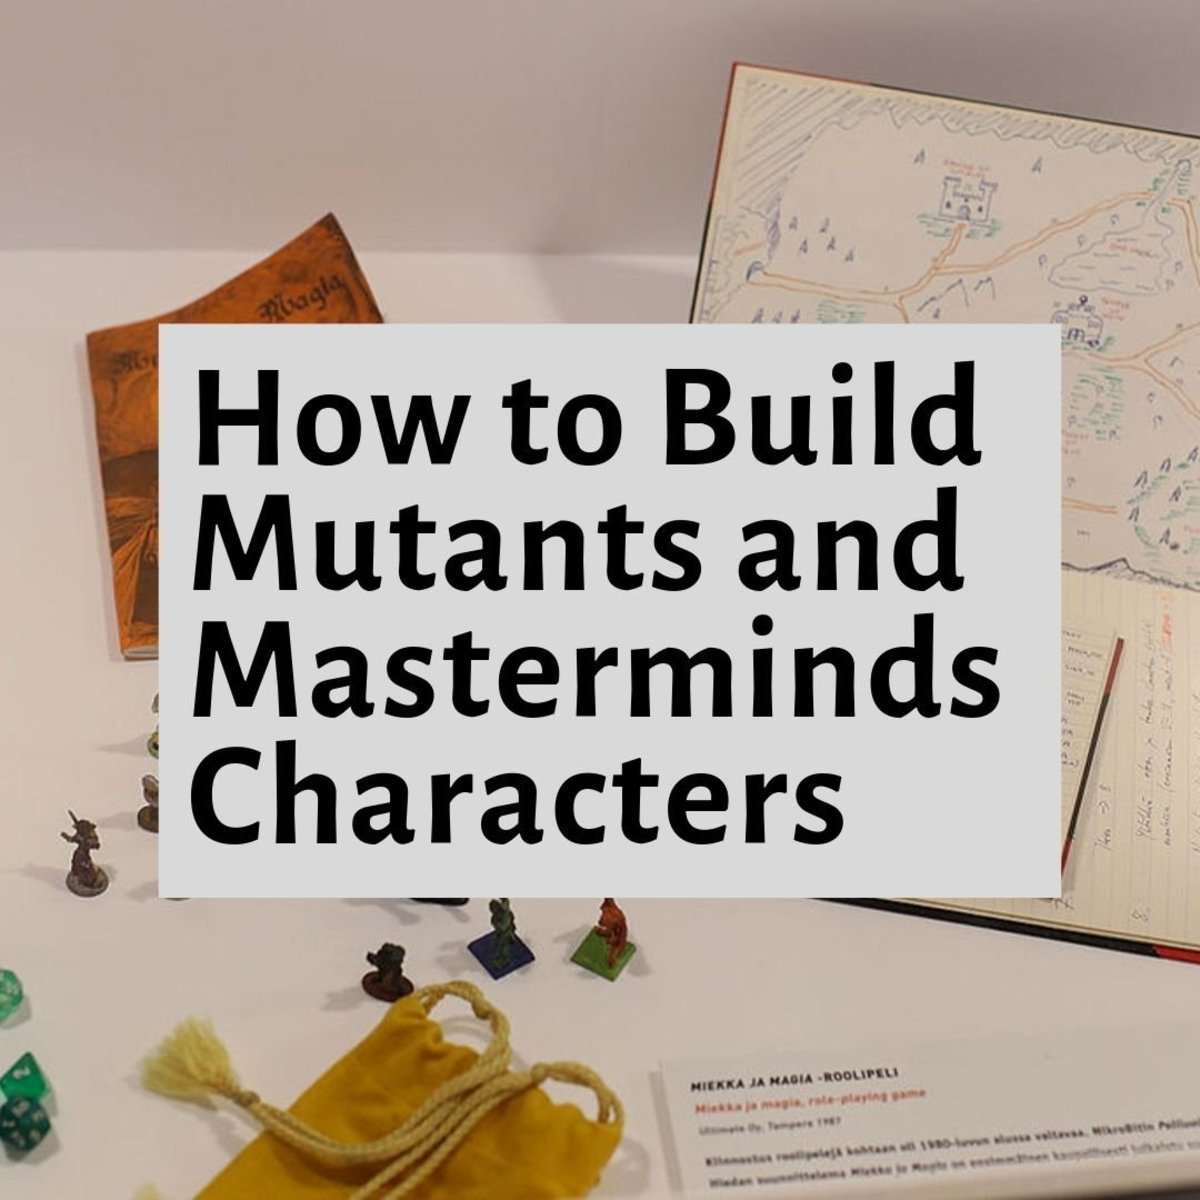 Five Tips for Building Mutants and Masterminds Characters